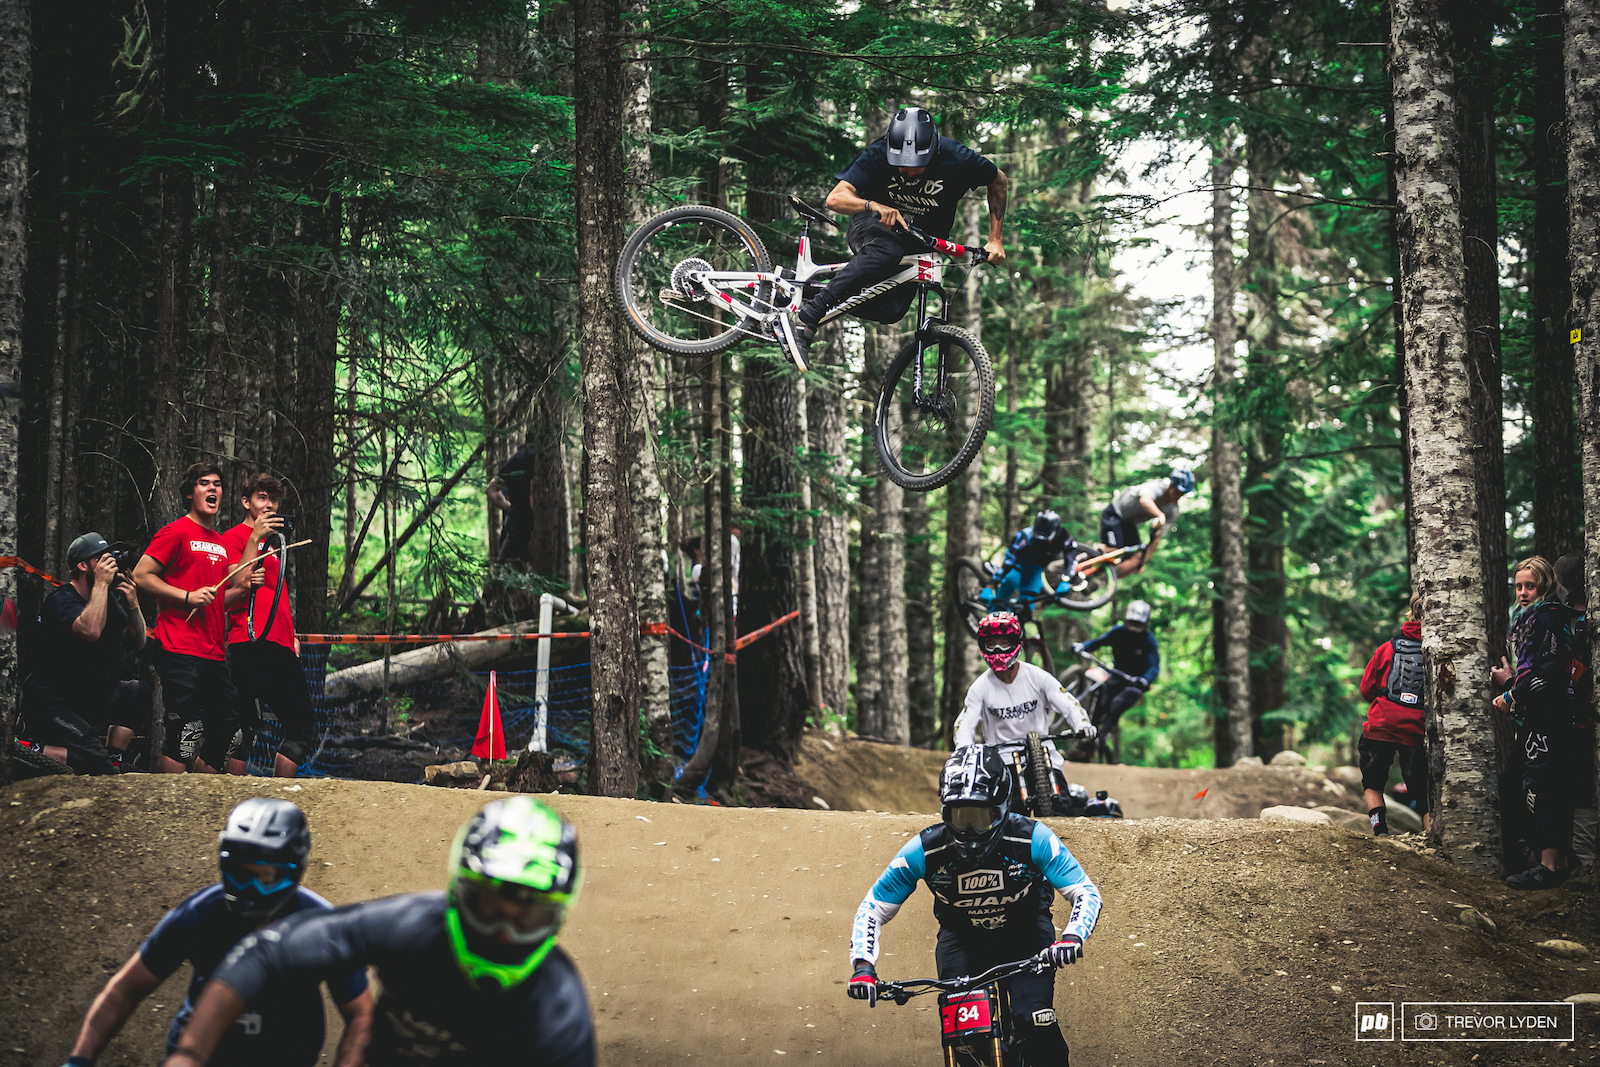 Thomas Lemoine with a big ol whip during the mega train.